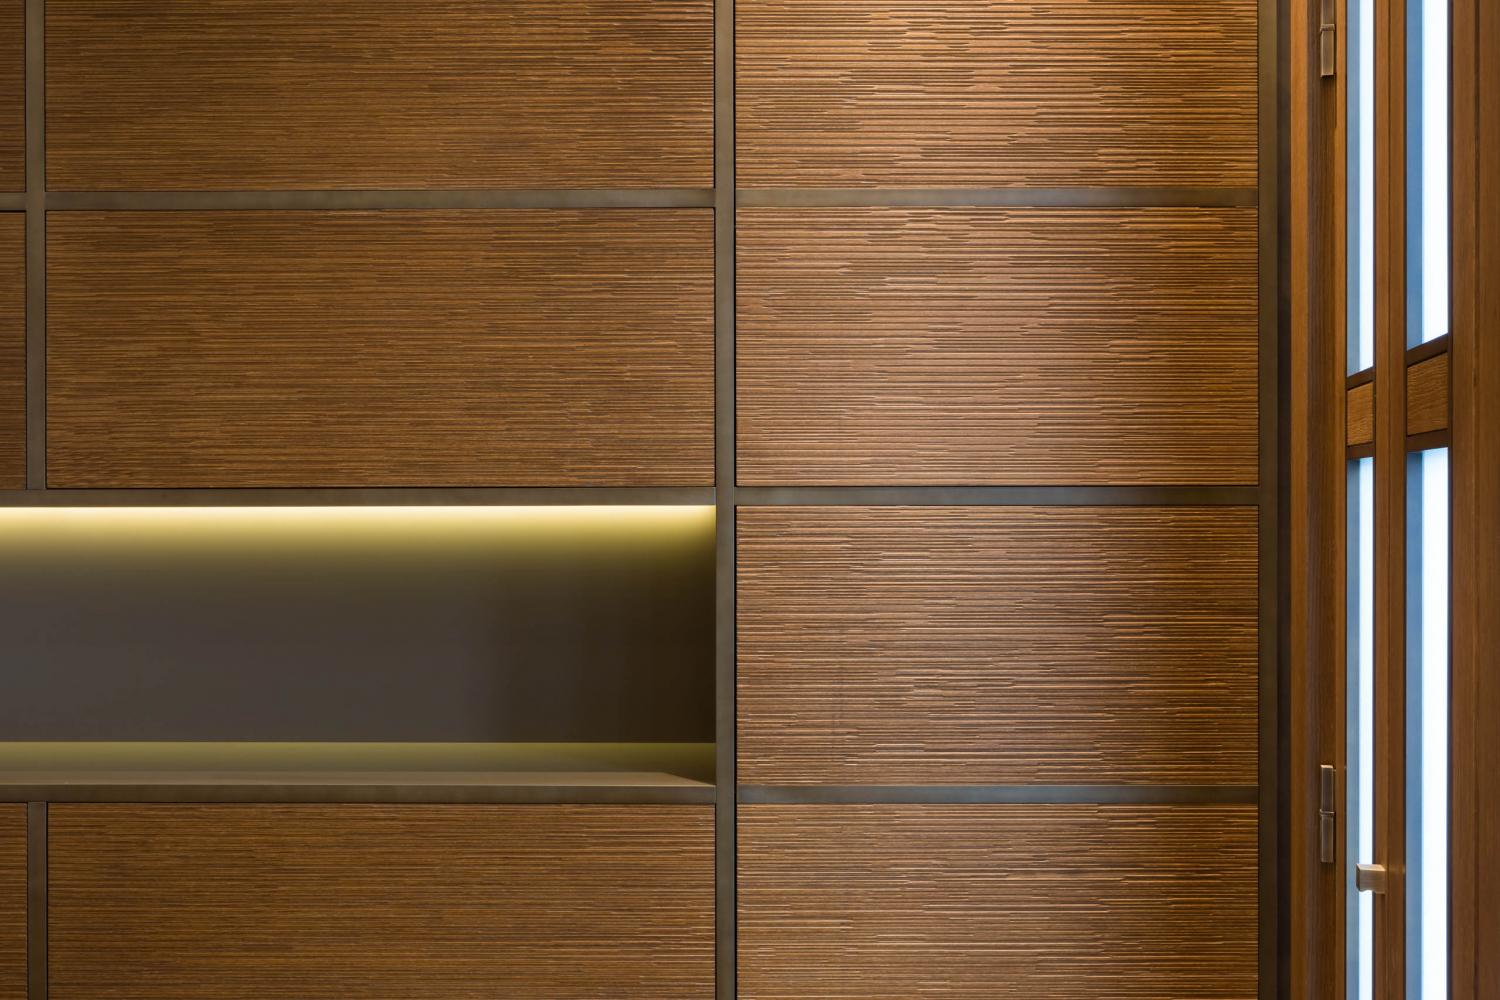 Luxury private apartment in Lugano, decorated with Laurameroni Decor Wall Panels Boiserie in carved, textured wood